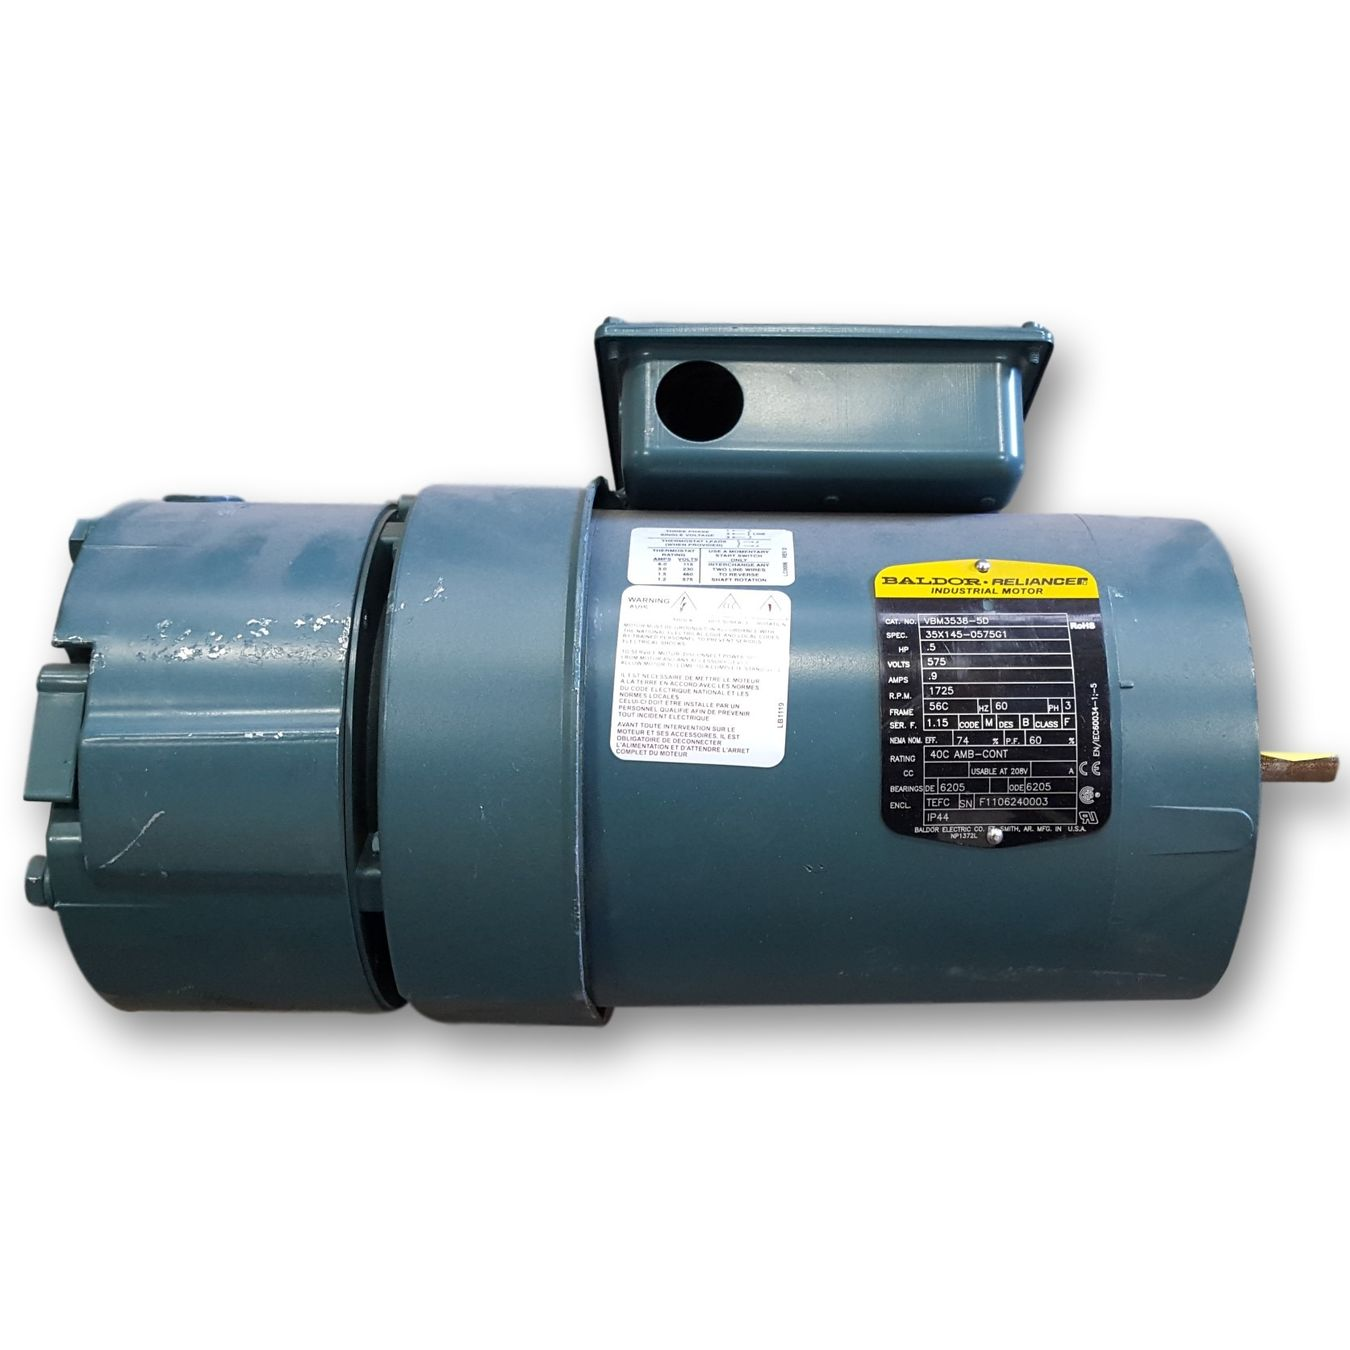 Used 1 2 Hp Baldor Reliance Industrial Motor 1725 Rpm